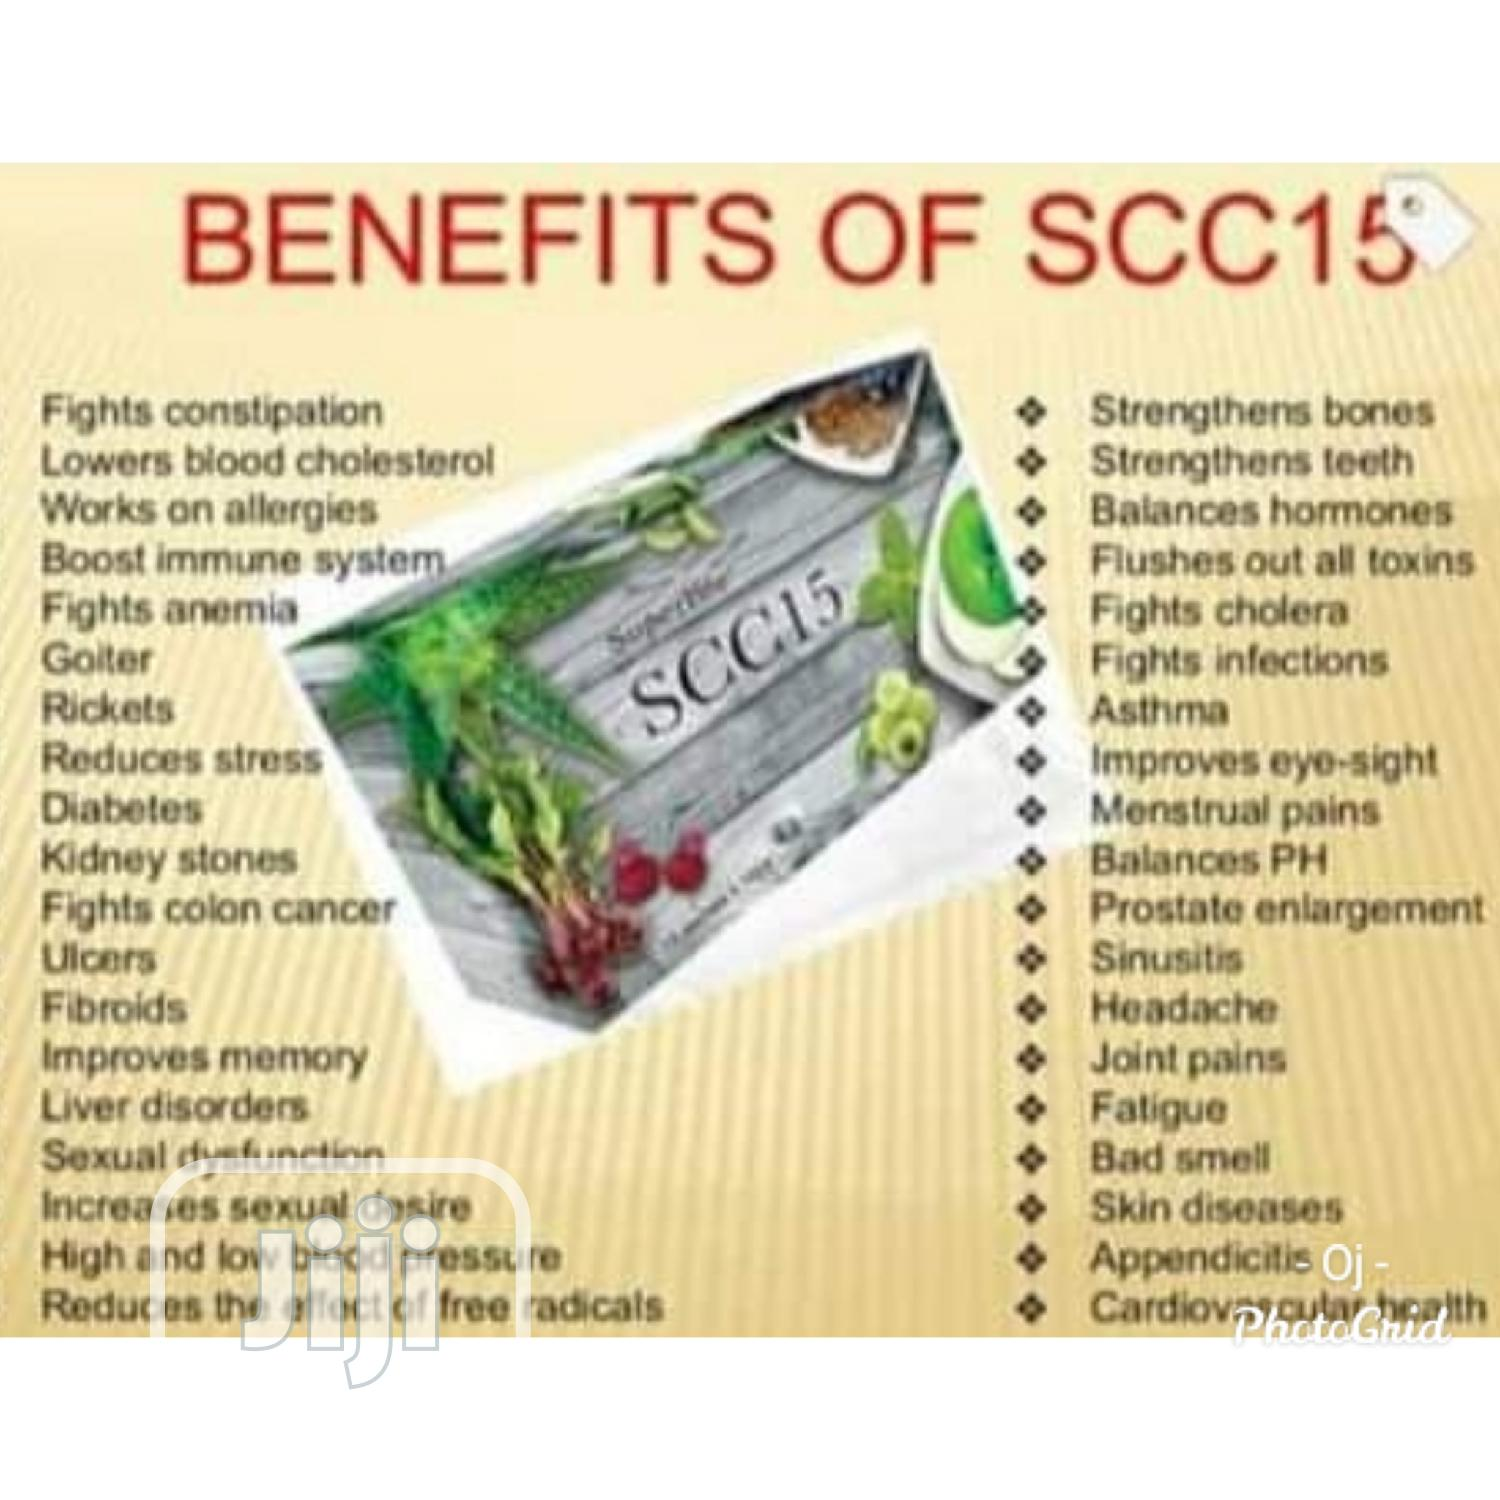 Superlife Scc15 Colon Cleanser For Every Kind Of Cancer In Ikorodu Vitamins Supplements Okemena Ameh Jiji Ng For Sale In Ikorodu Buy Vitamins Supplements From Okemena Ameh On